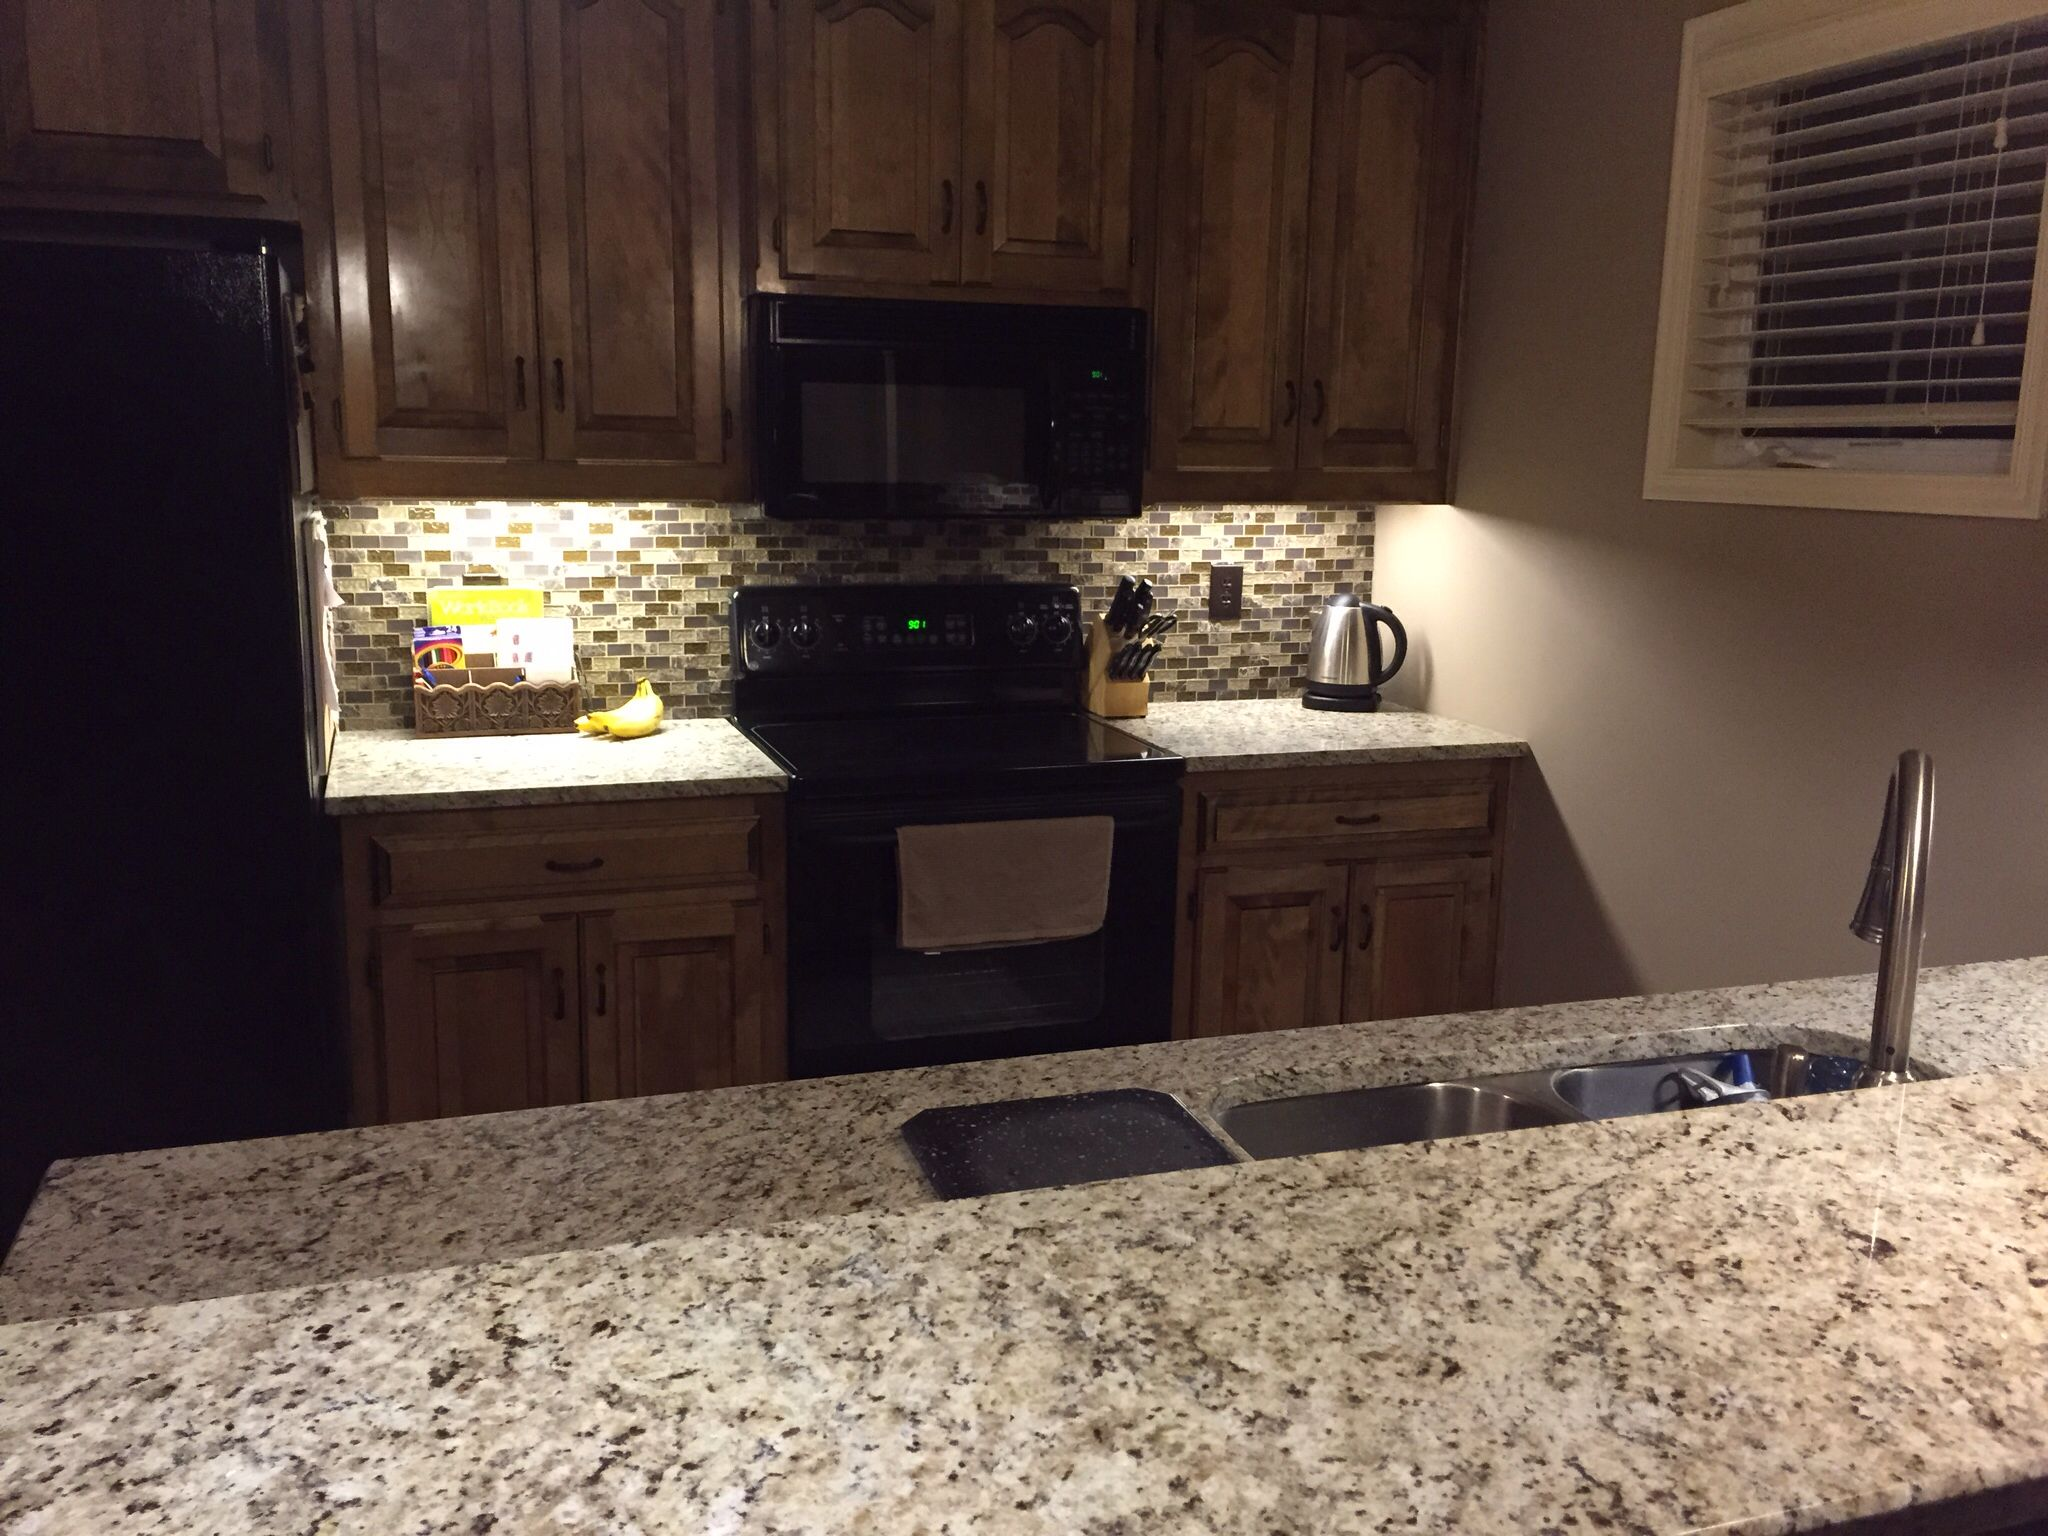 Giallo Verona Granite, Sonoma Blend back splash from Home Depot ...